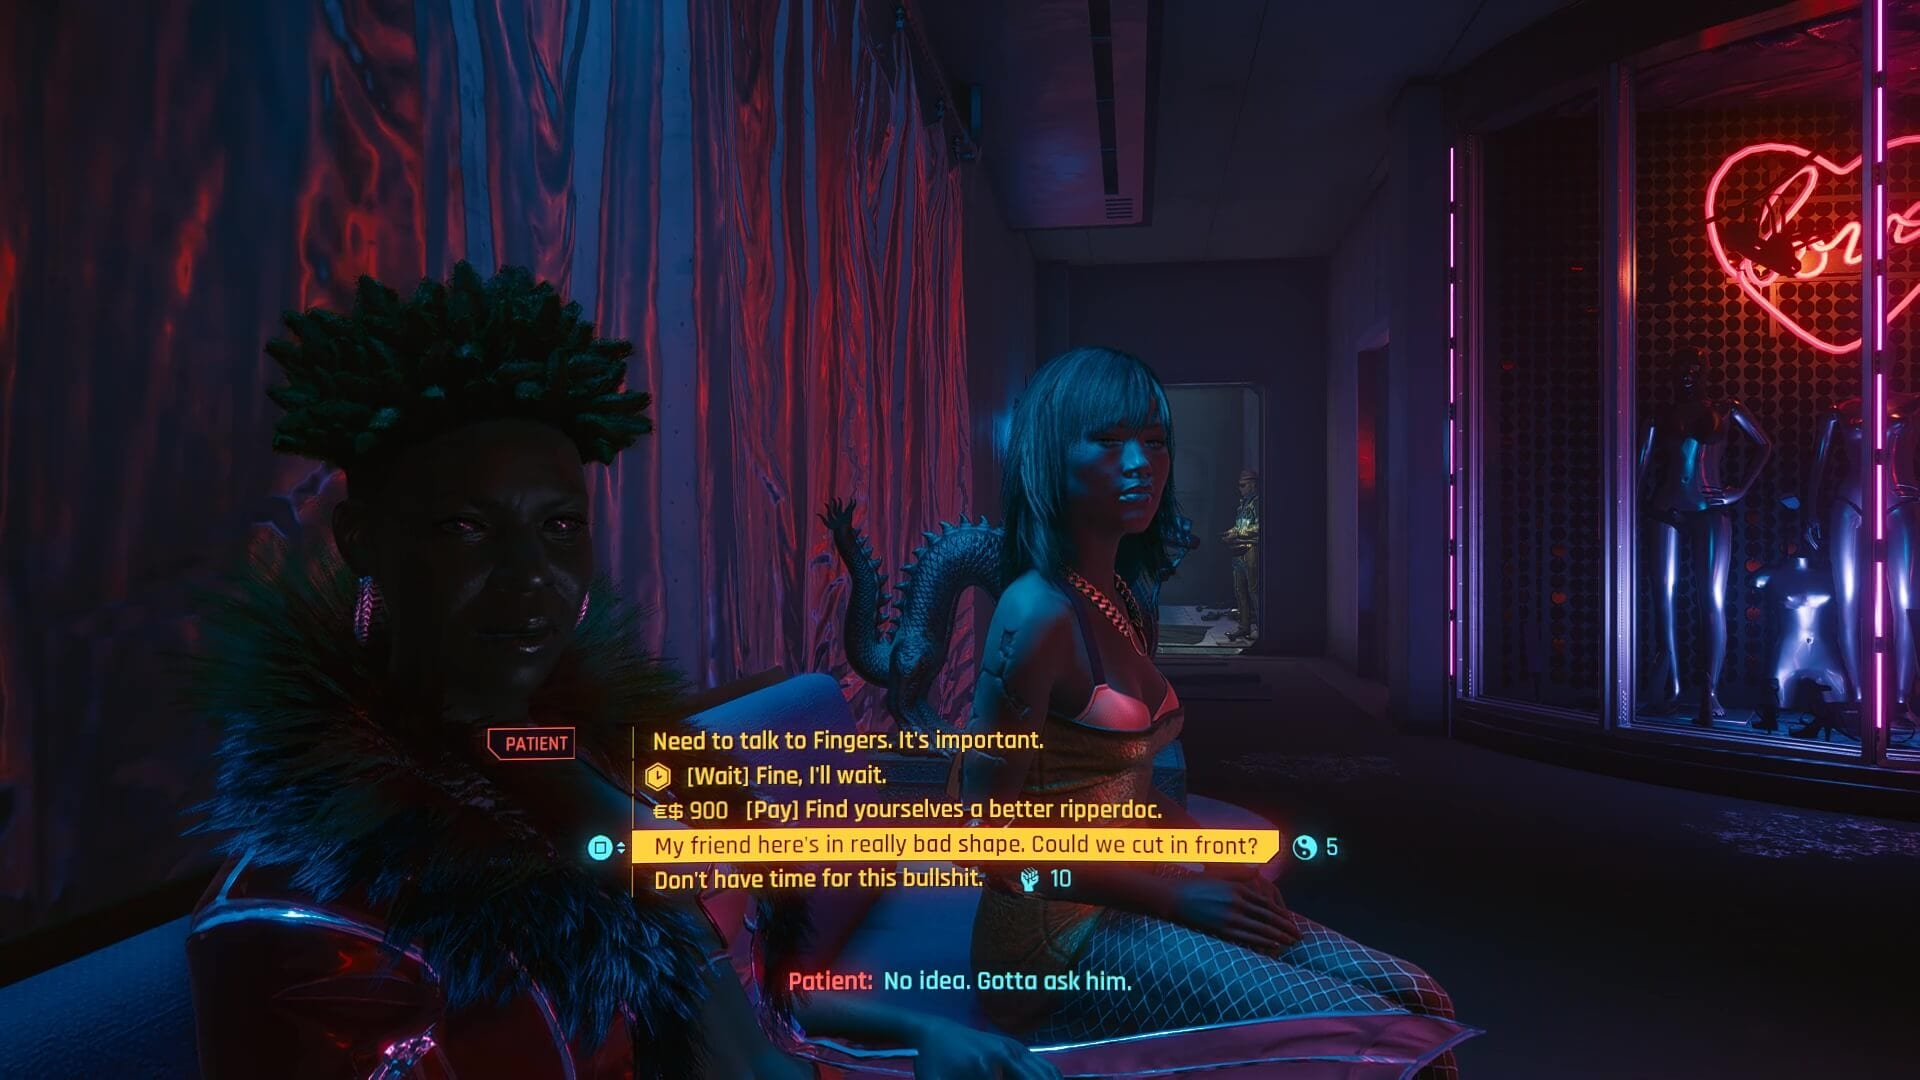 Cyberpunk 2077 Dialogue Choices